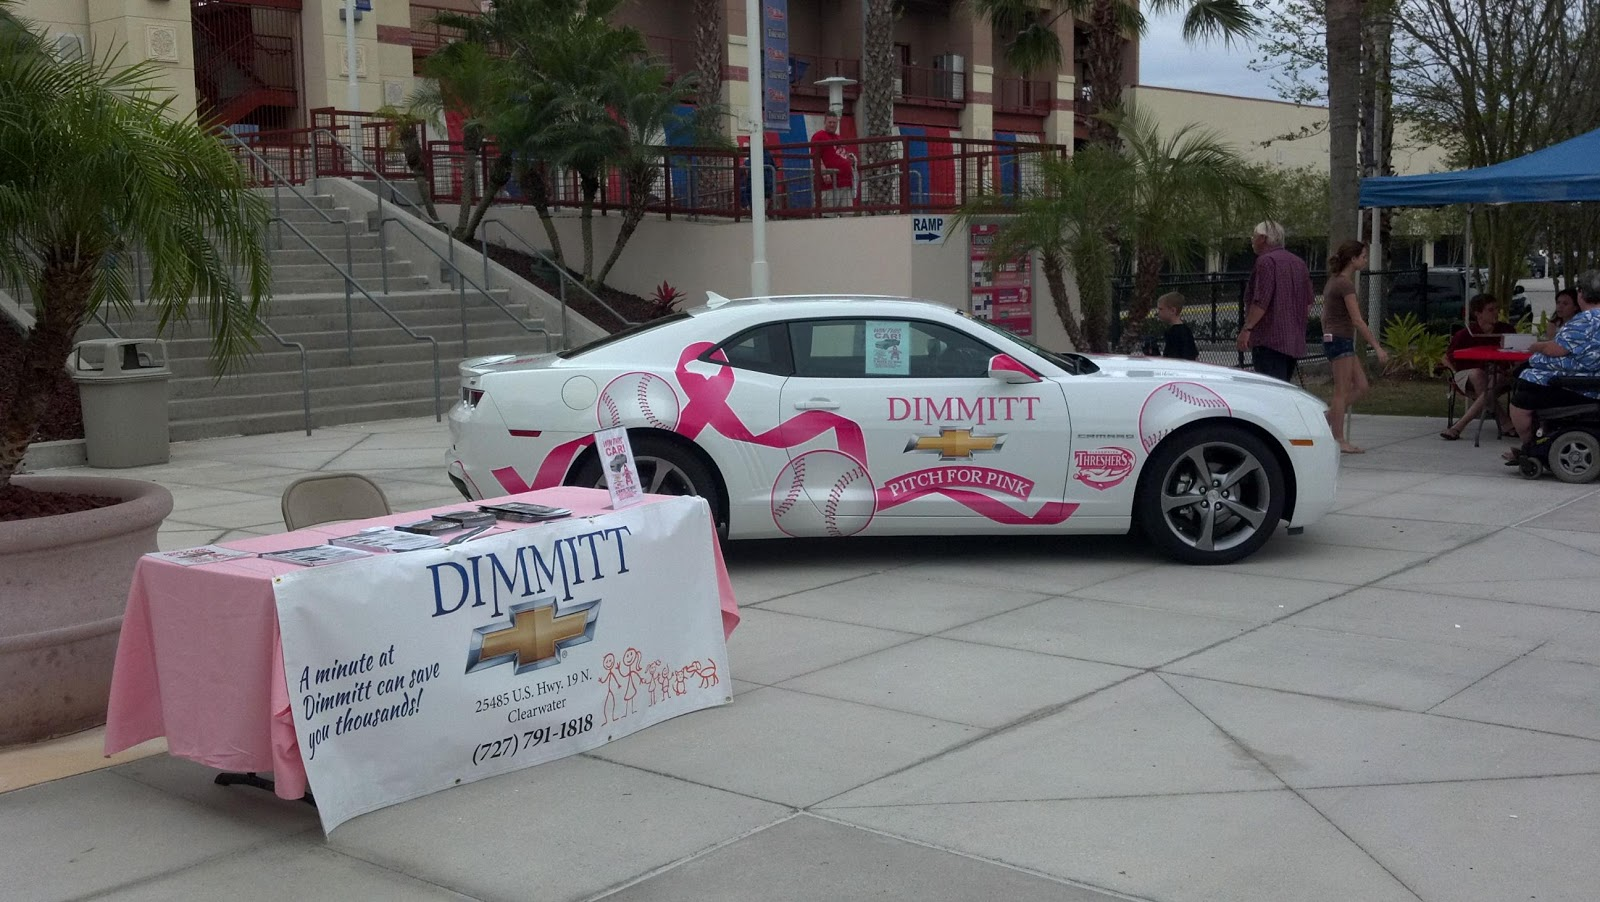 Dimmitt Chevrolet Used Cars >> Dimmitt Chevrolet | New & Used Cars | Clearwater Chevrolet Dealer: 2013 Camaro Giveaway